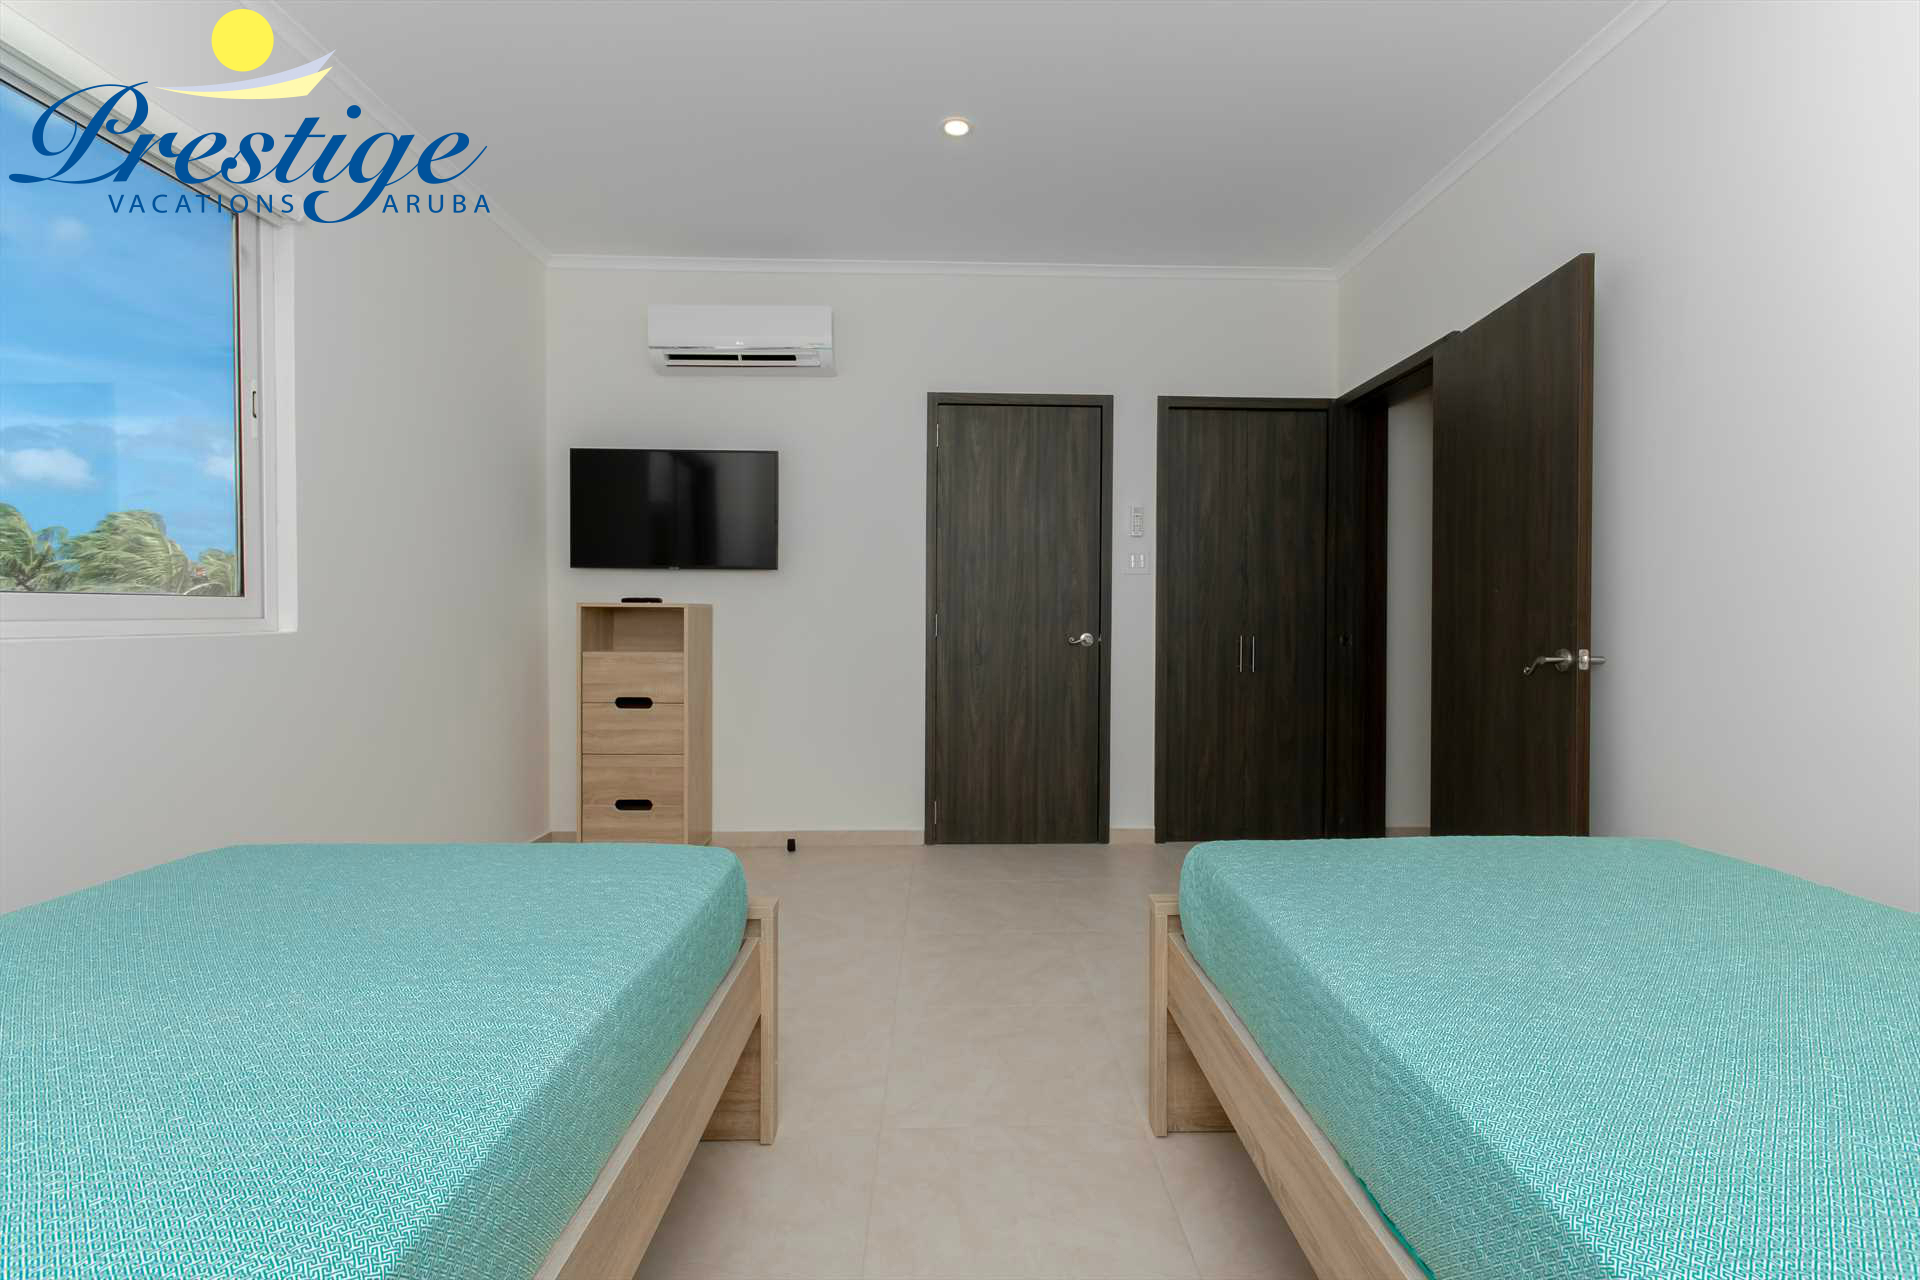 The second bedroom with a TV, walk-in closet and en-suite bathroom